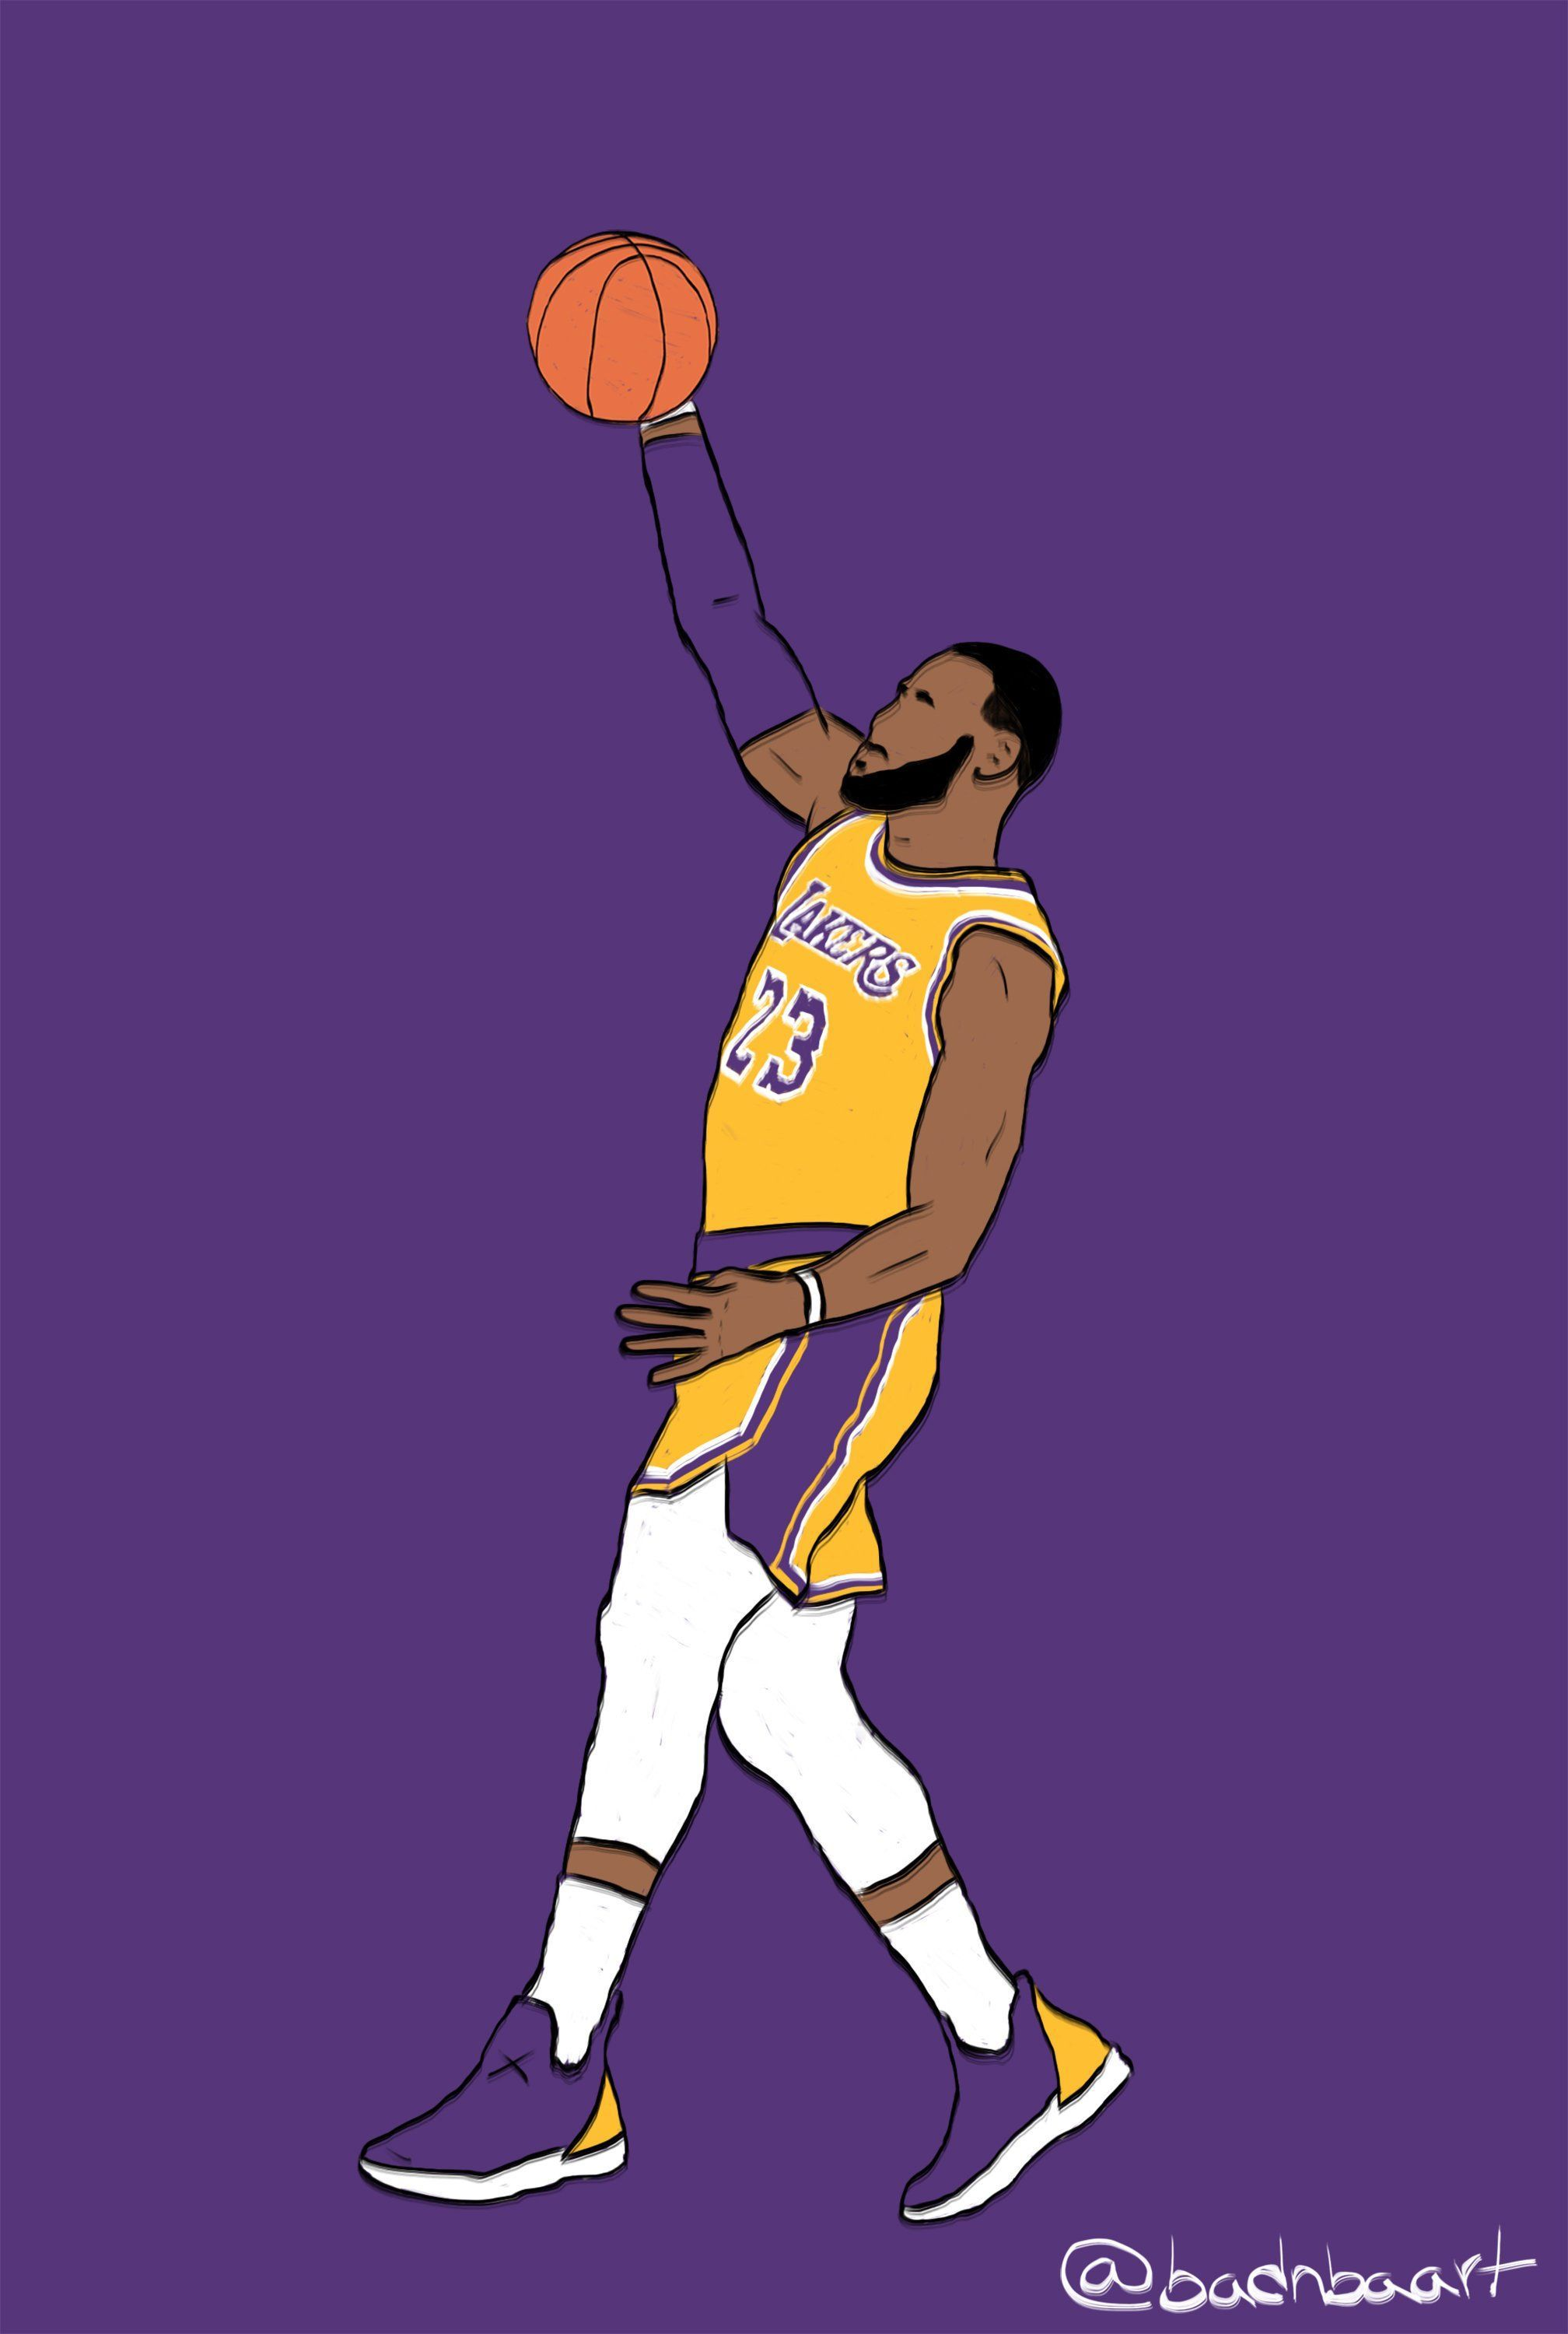 Pin By Lucas Drawer On Painting Lebron James Wallpapers Lebron James Lebron James Lakers